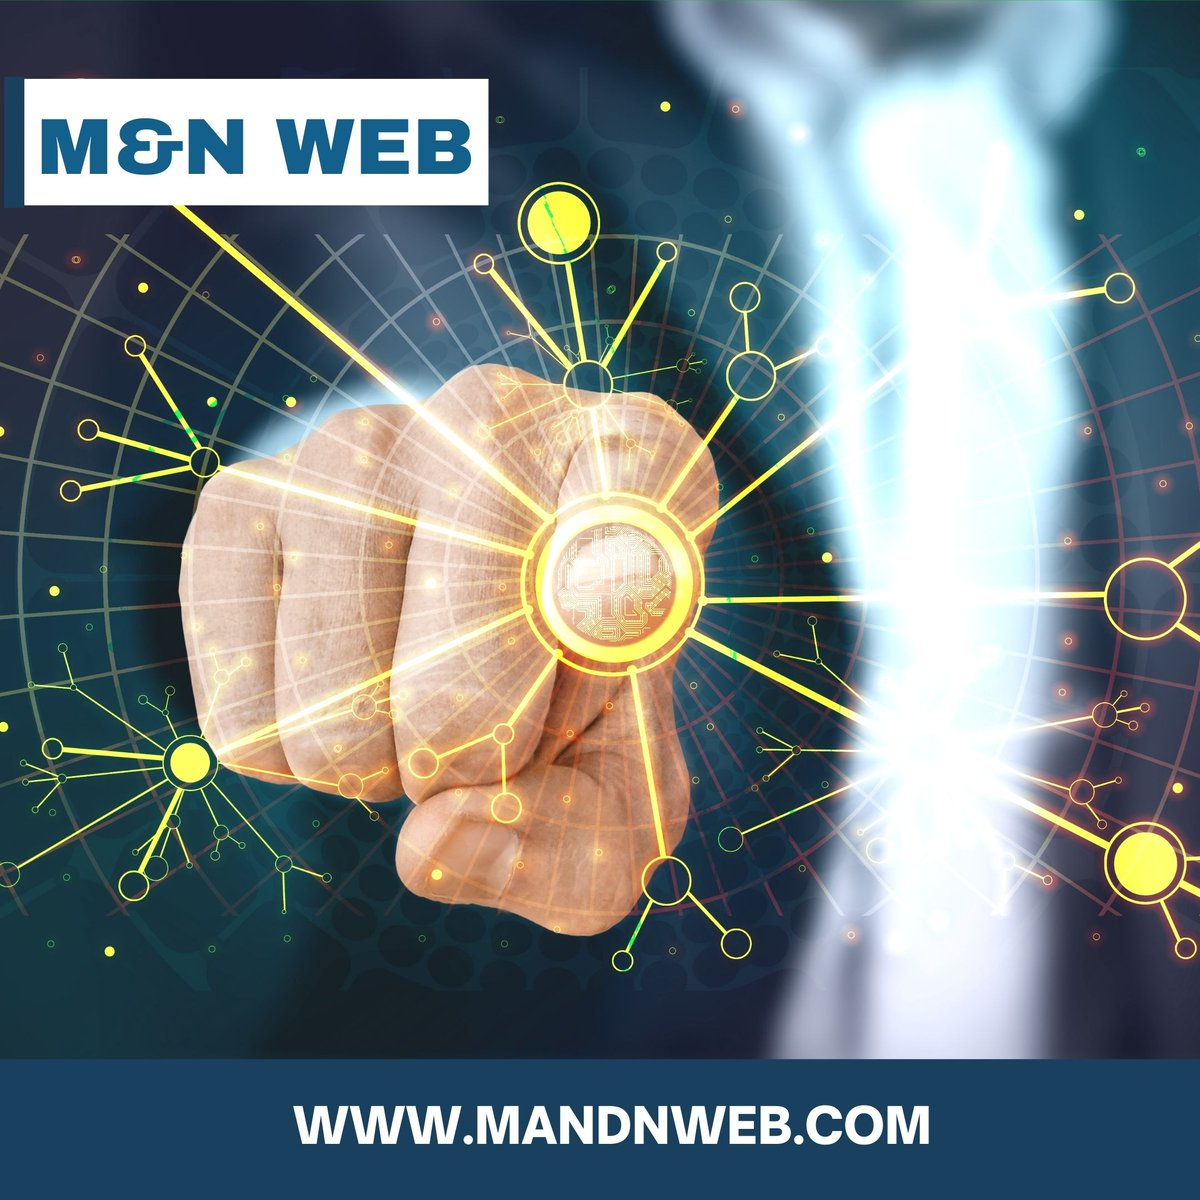 Most clients who visit a website want to access information quickly & easily. If you want leads to remain on your page, you must implement a navigation that is easy for your audience to use.  Contact us. https://t.co/yv6ZDeqm5l  #MandNWeb #WebDeveloper #SEO #Website #Design https://t.co/6q9dMJtQhB